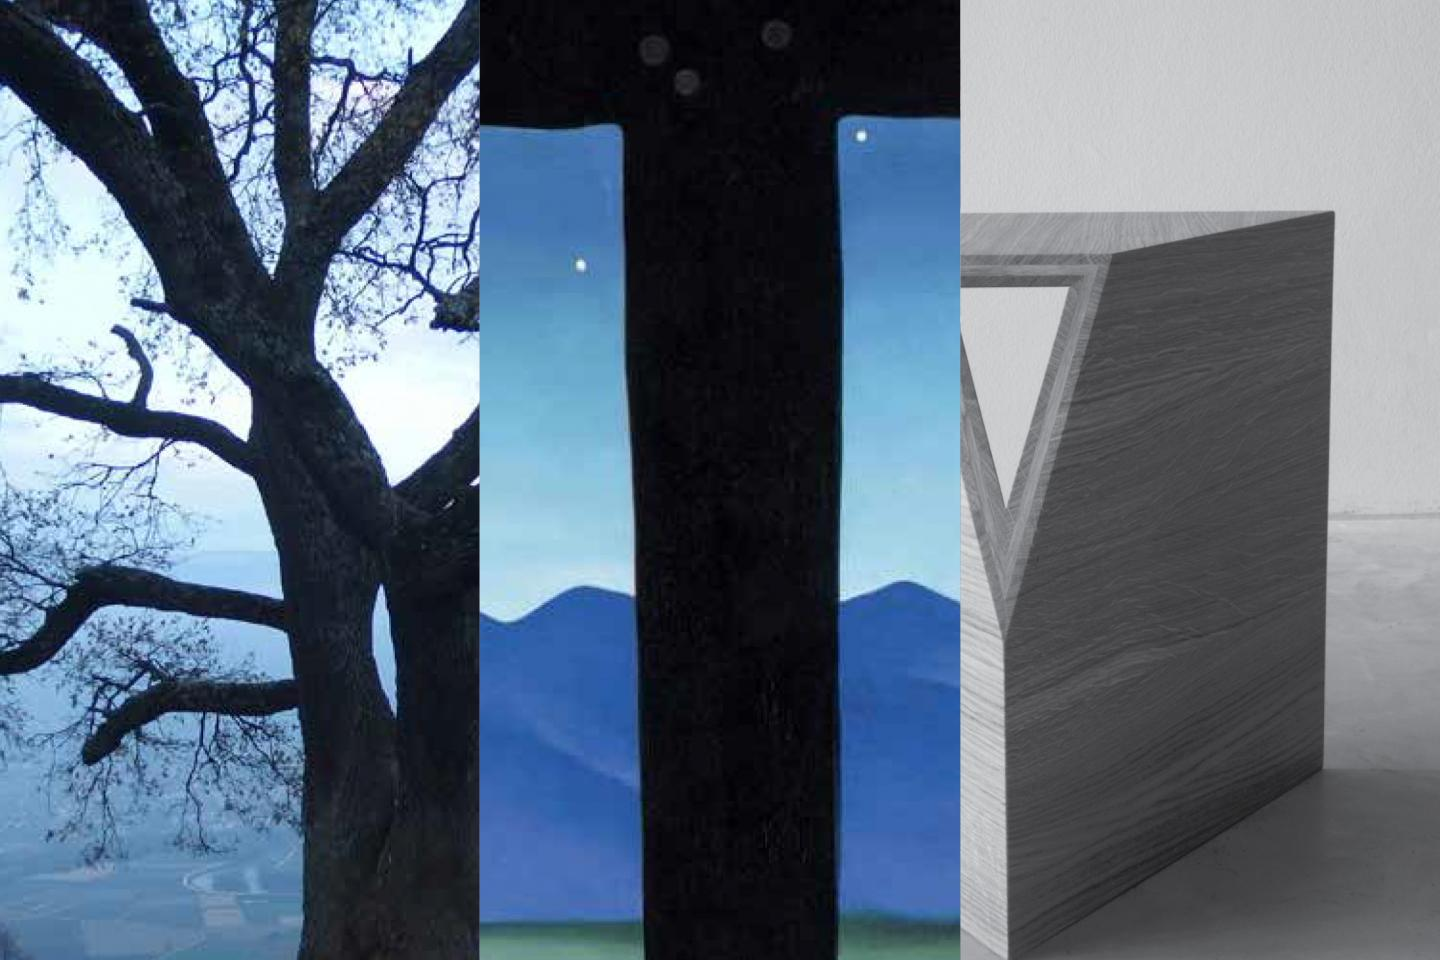 a tree, a mountain skyline with stars, and the corner of a concrete block in shades of blue, gray, and white